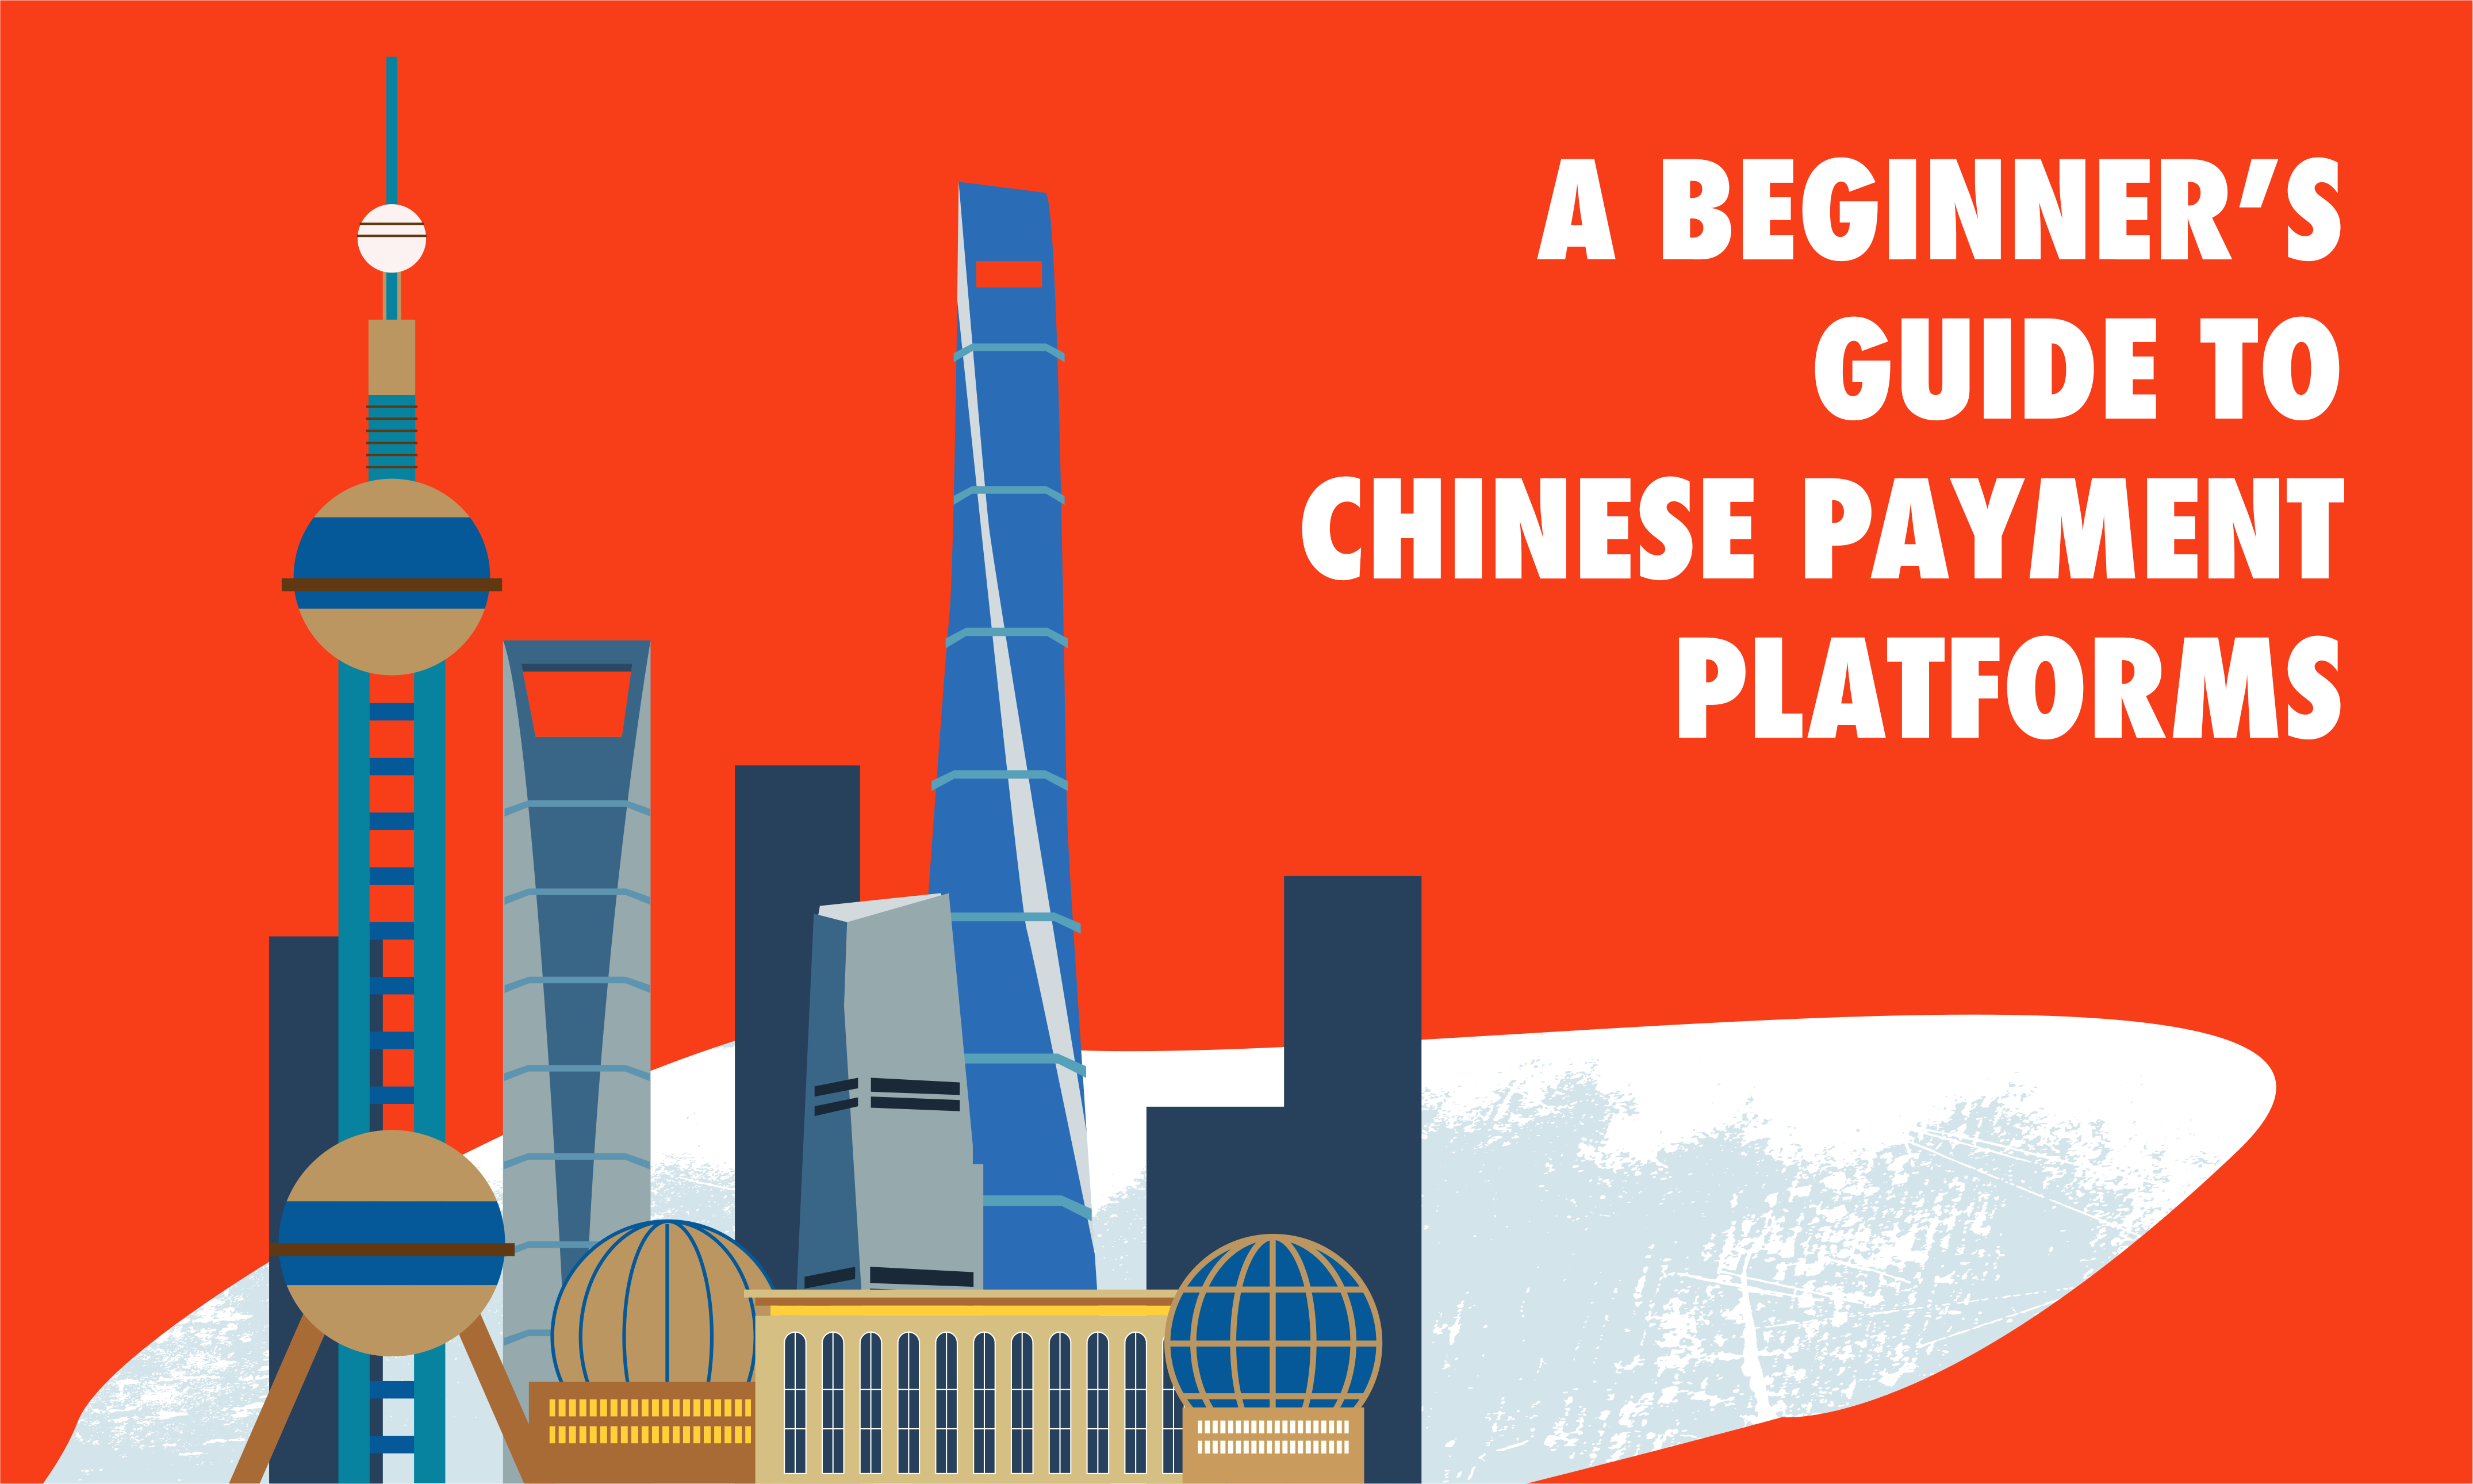 A Beginner's Guide to Chinese Payment Platforms